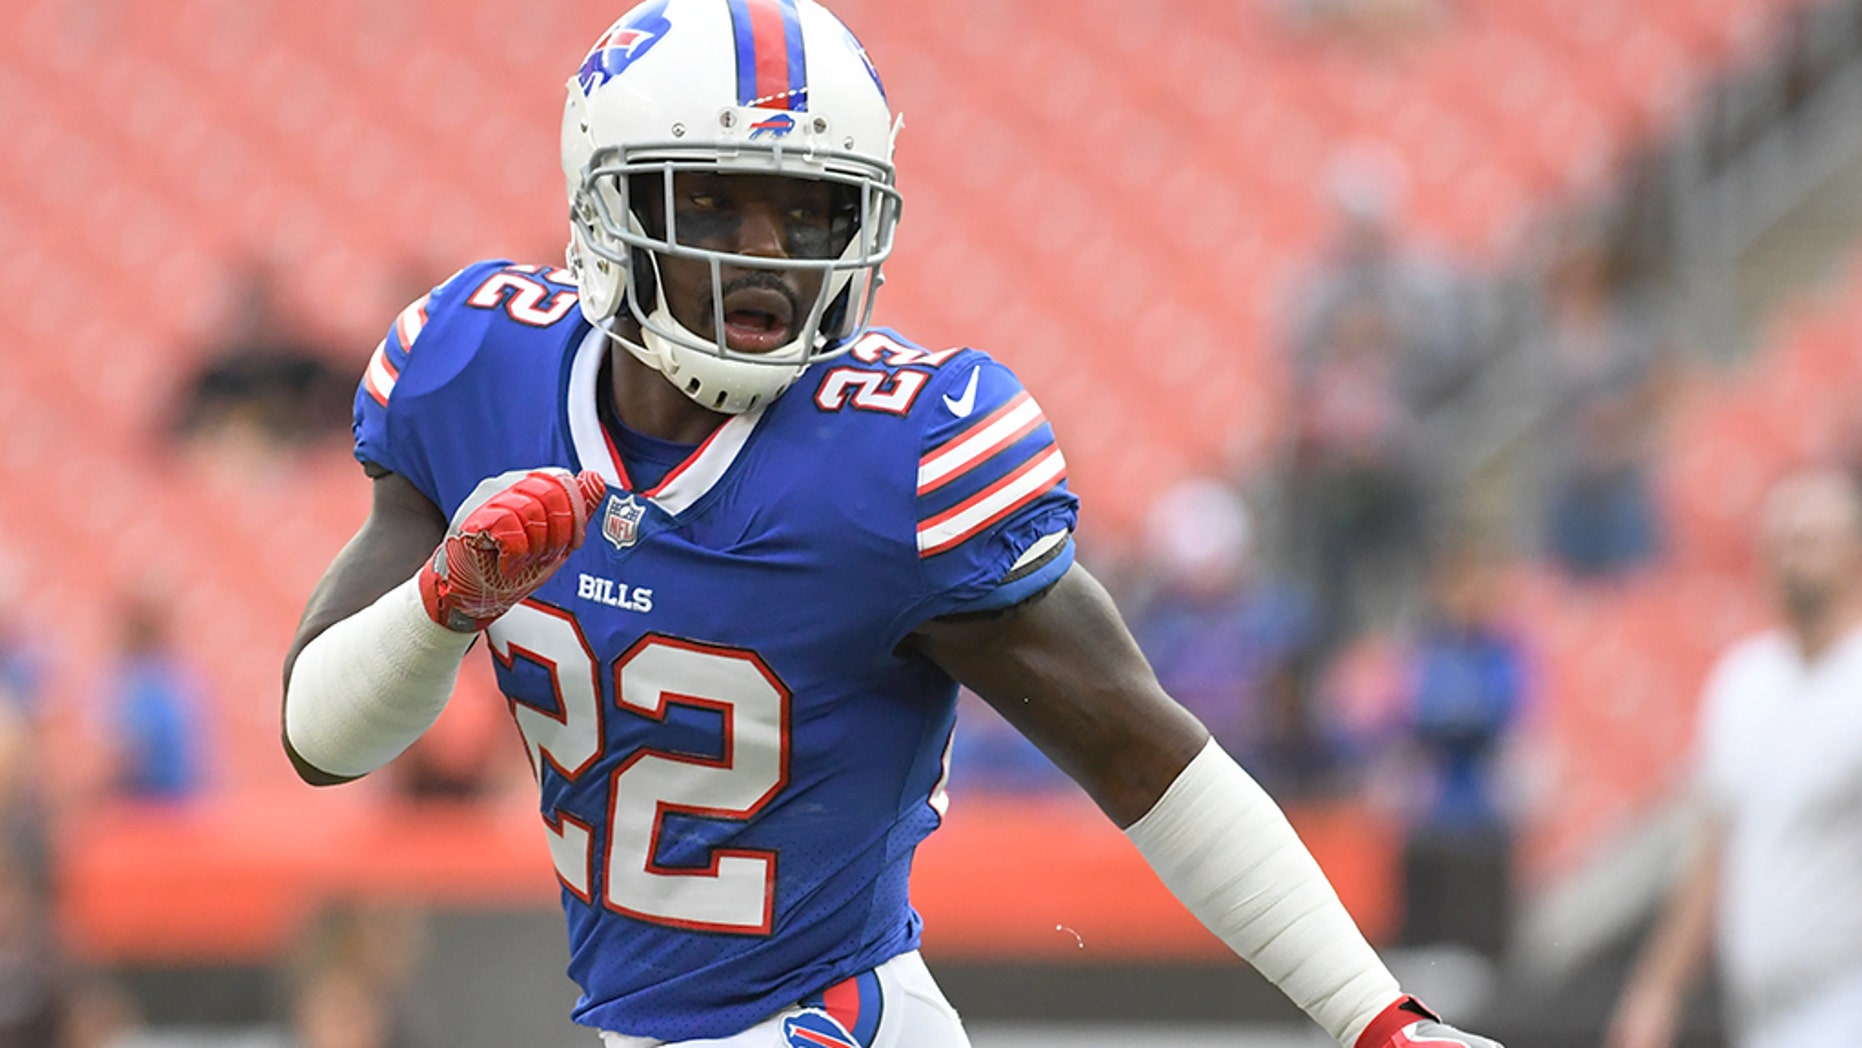 aa7ed7cc2 Vontae Davis spent six years with the Indianapolis Colts before signing  with the Buffalo Bills as